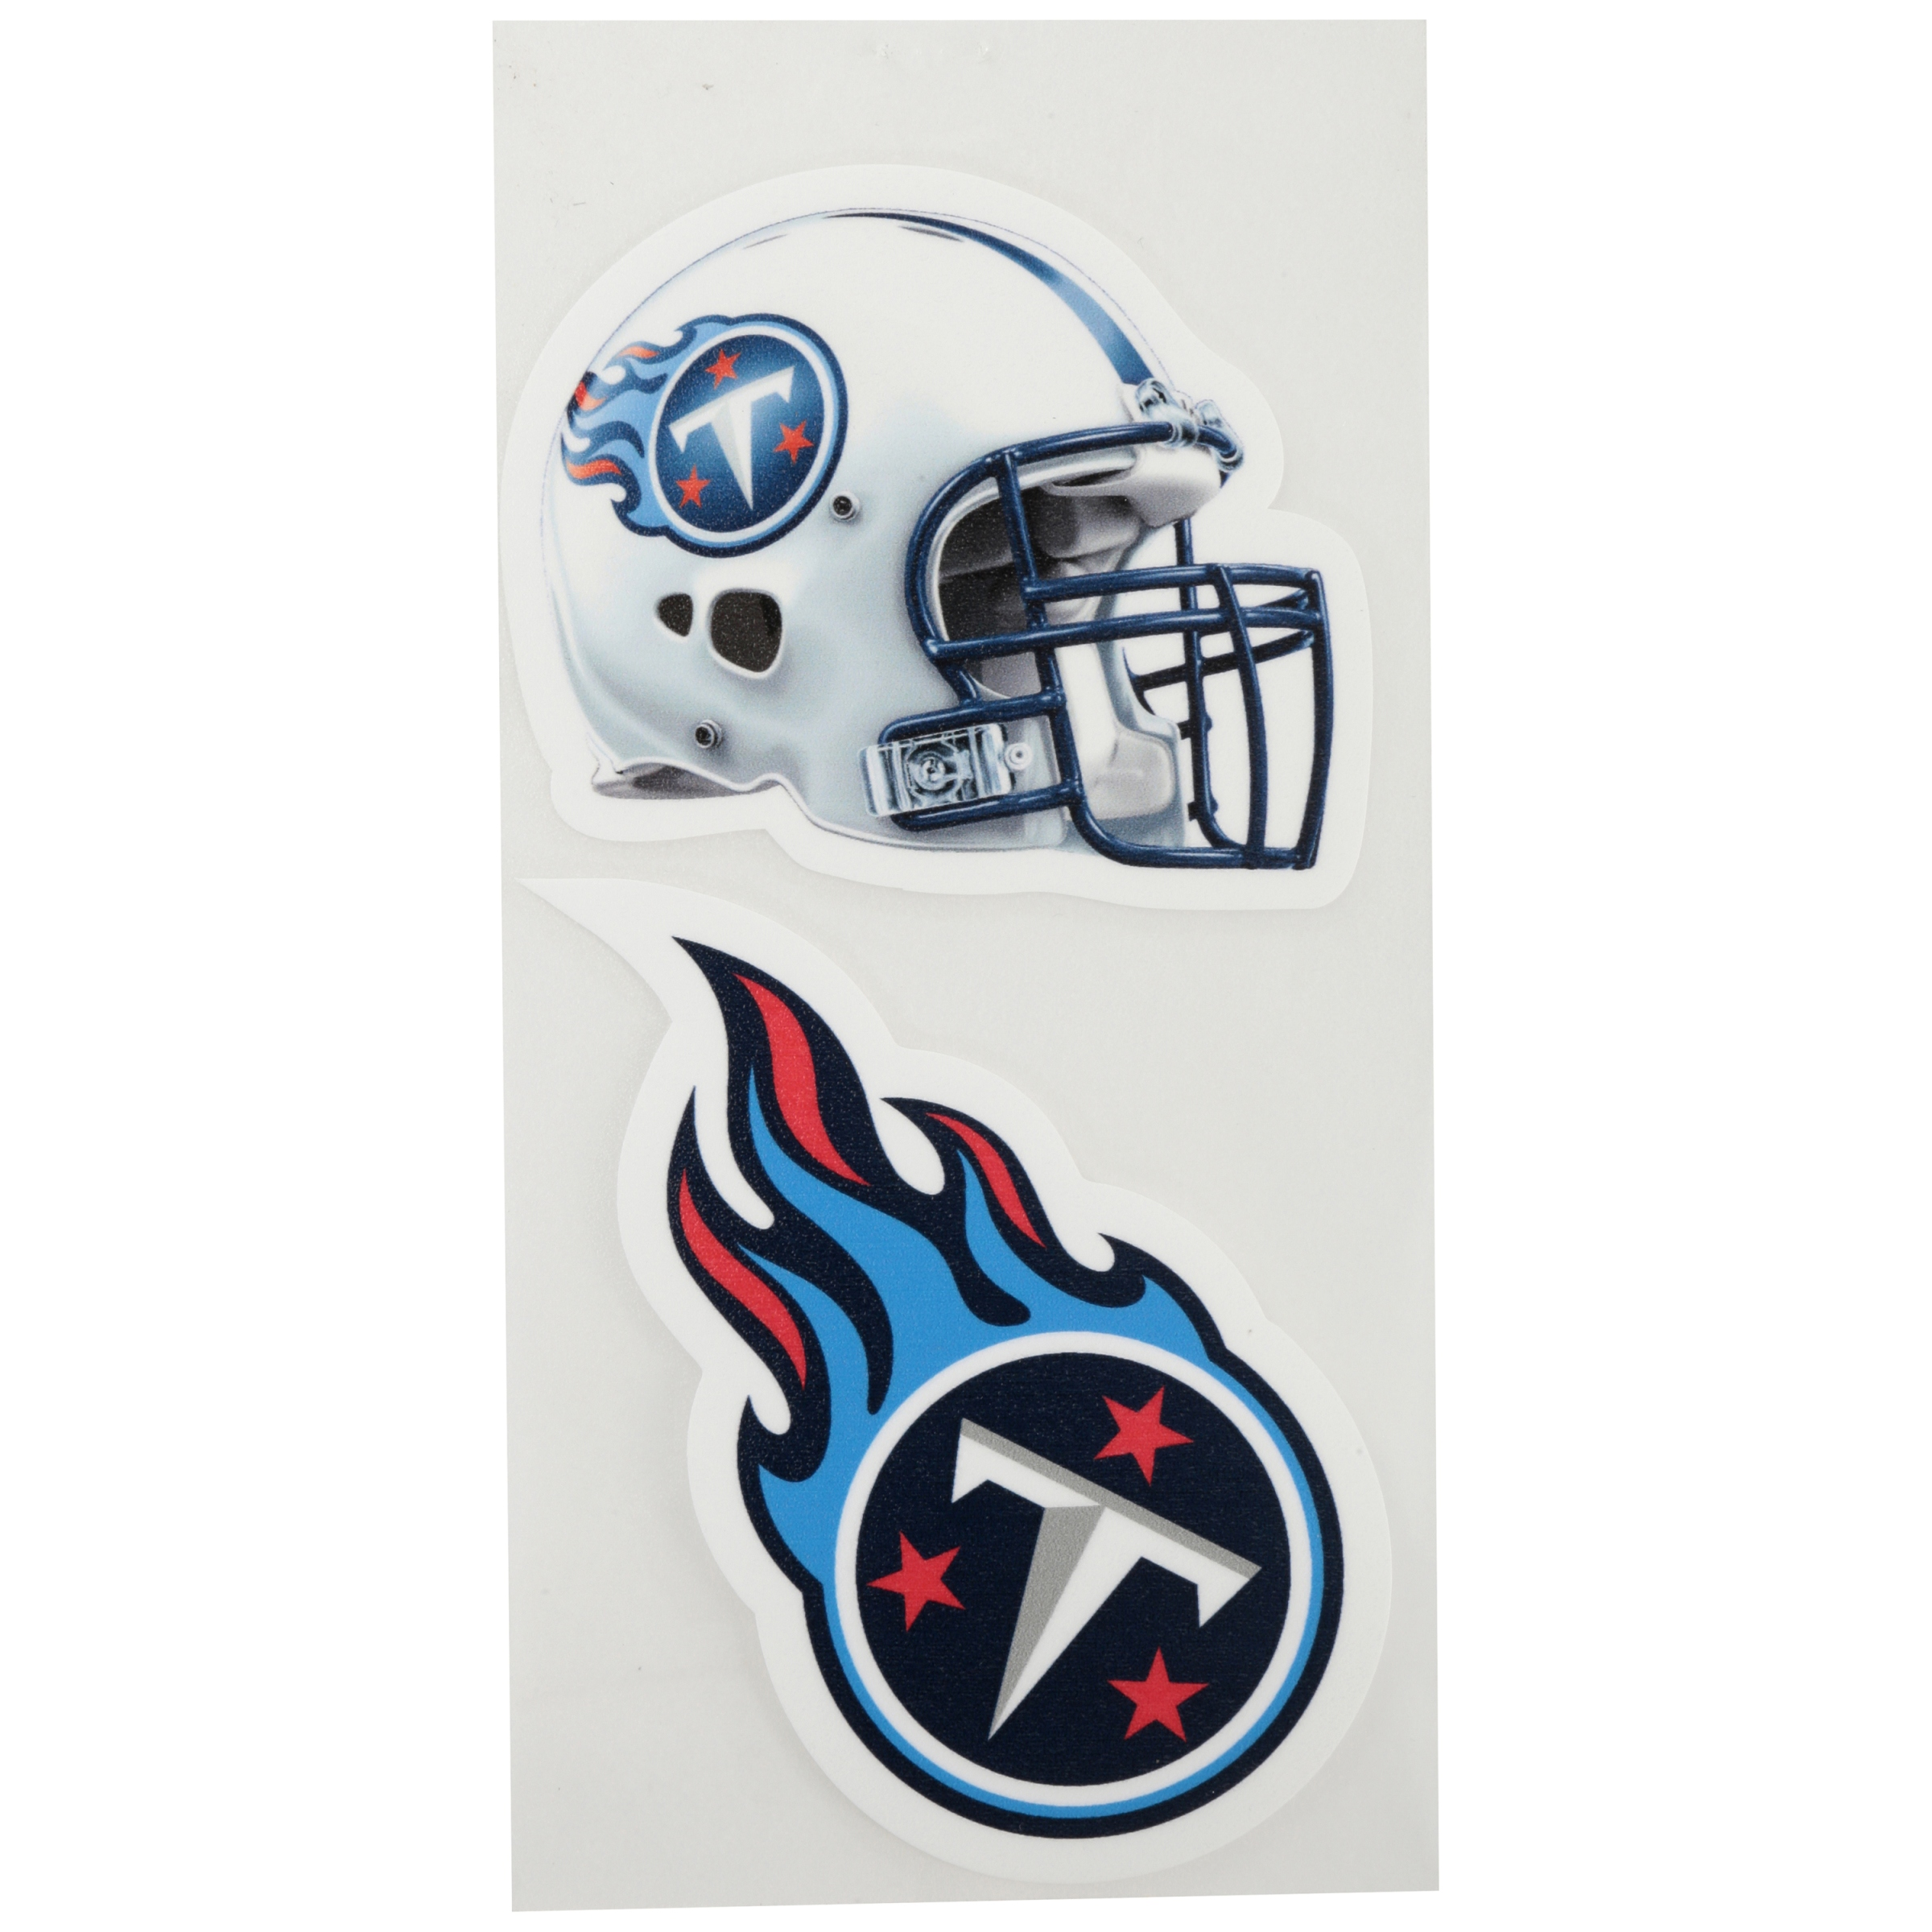 Tennessee Titans Licensed Decal 12 x 9-1 Decal Only